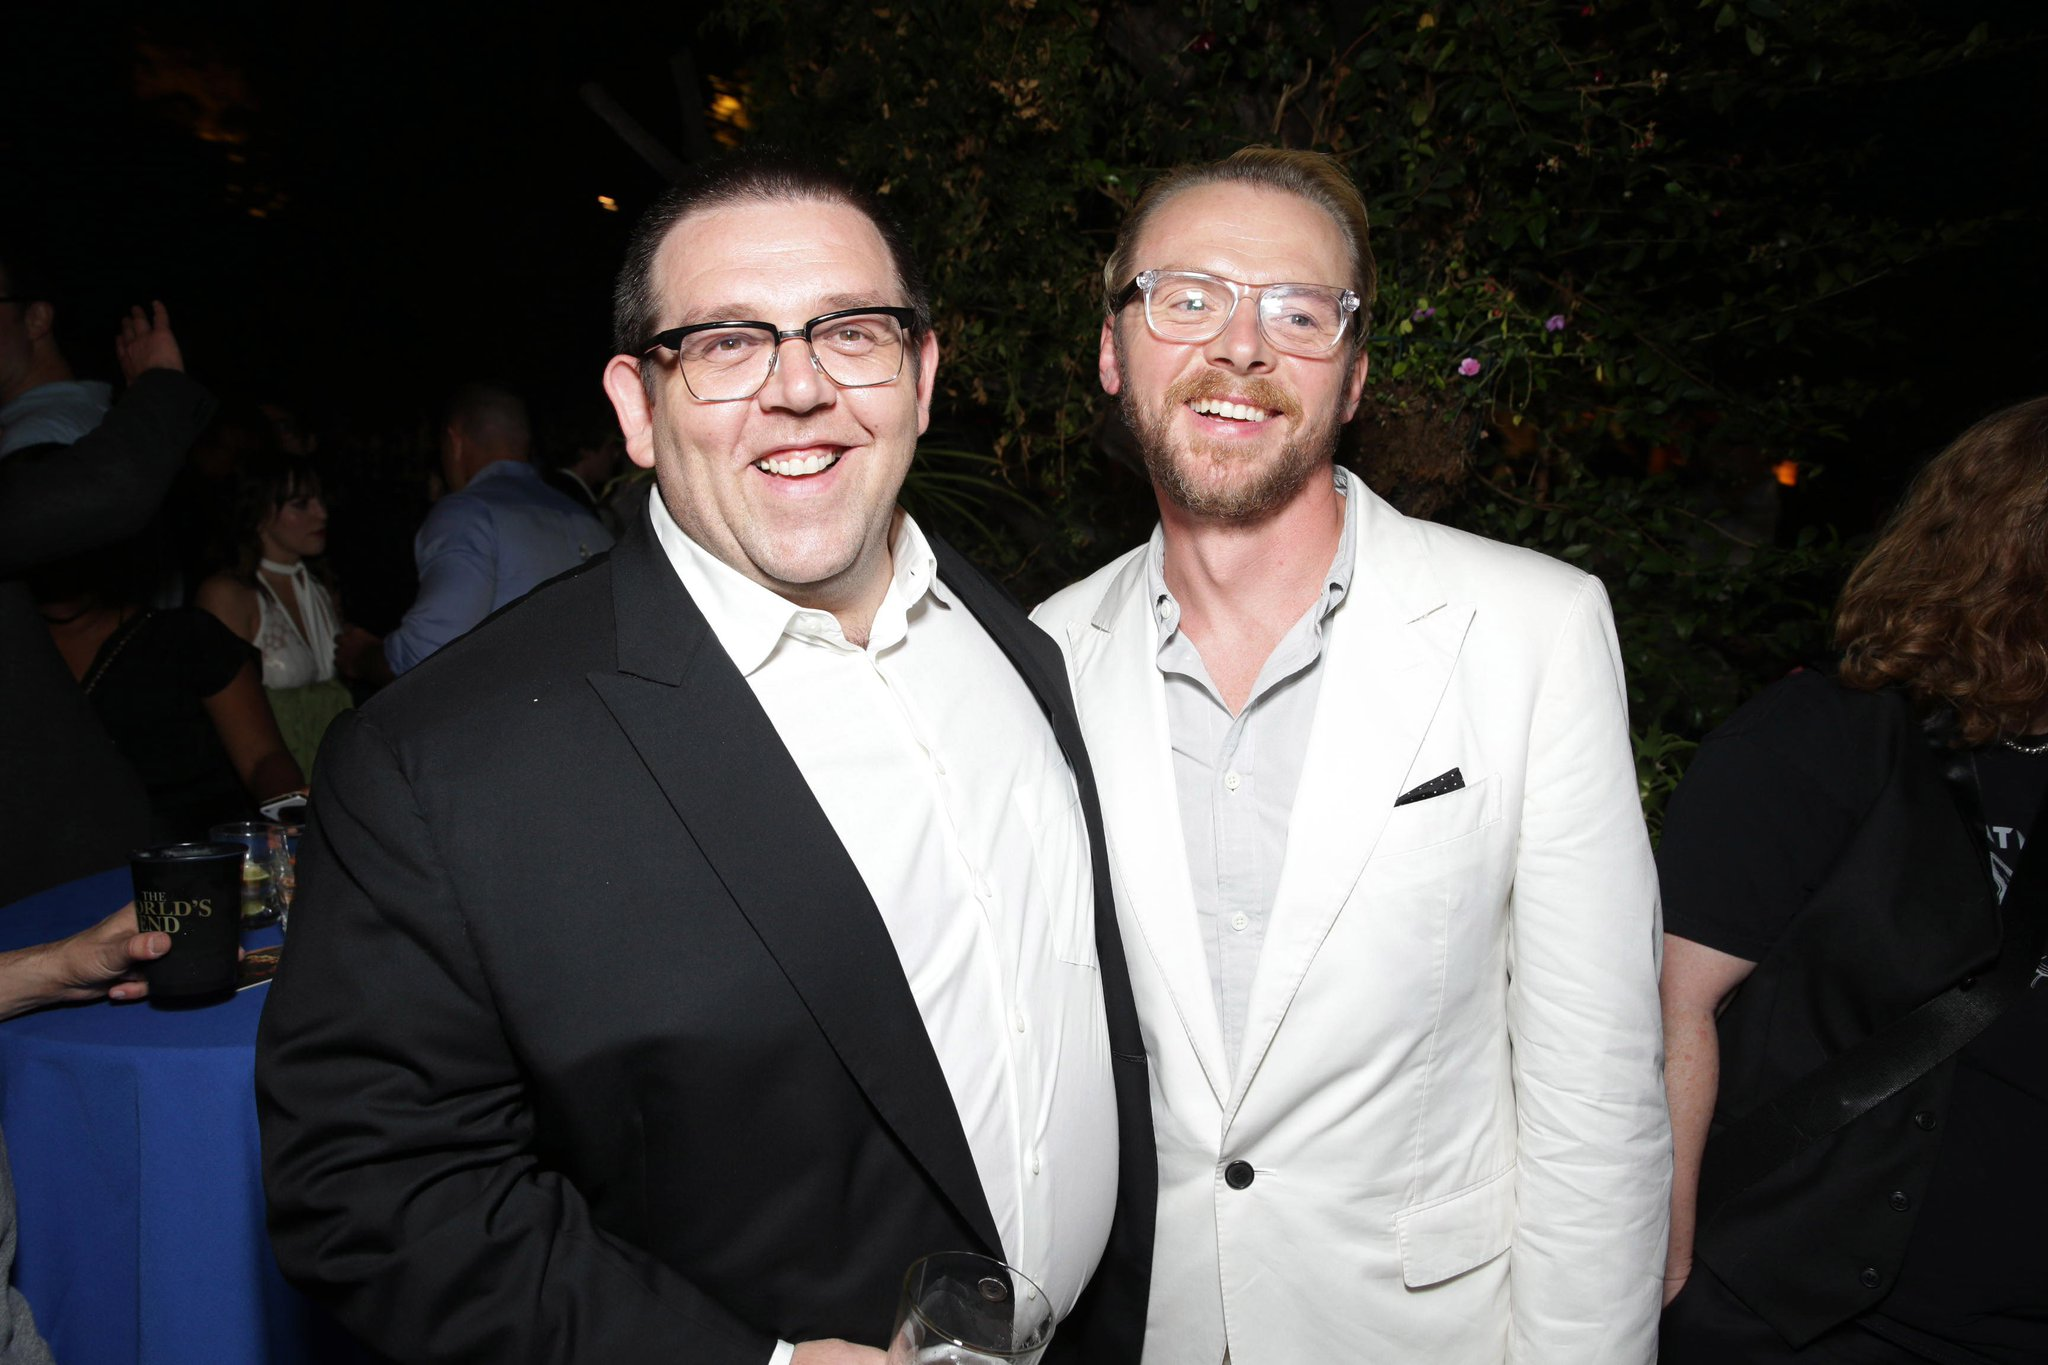 .@simonpegg and @nickjfrost outline plans for their Sony-backed production business https://t.co/pj90VMJ4an https://t.co/nNY4yHPOrm